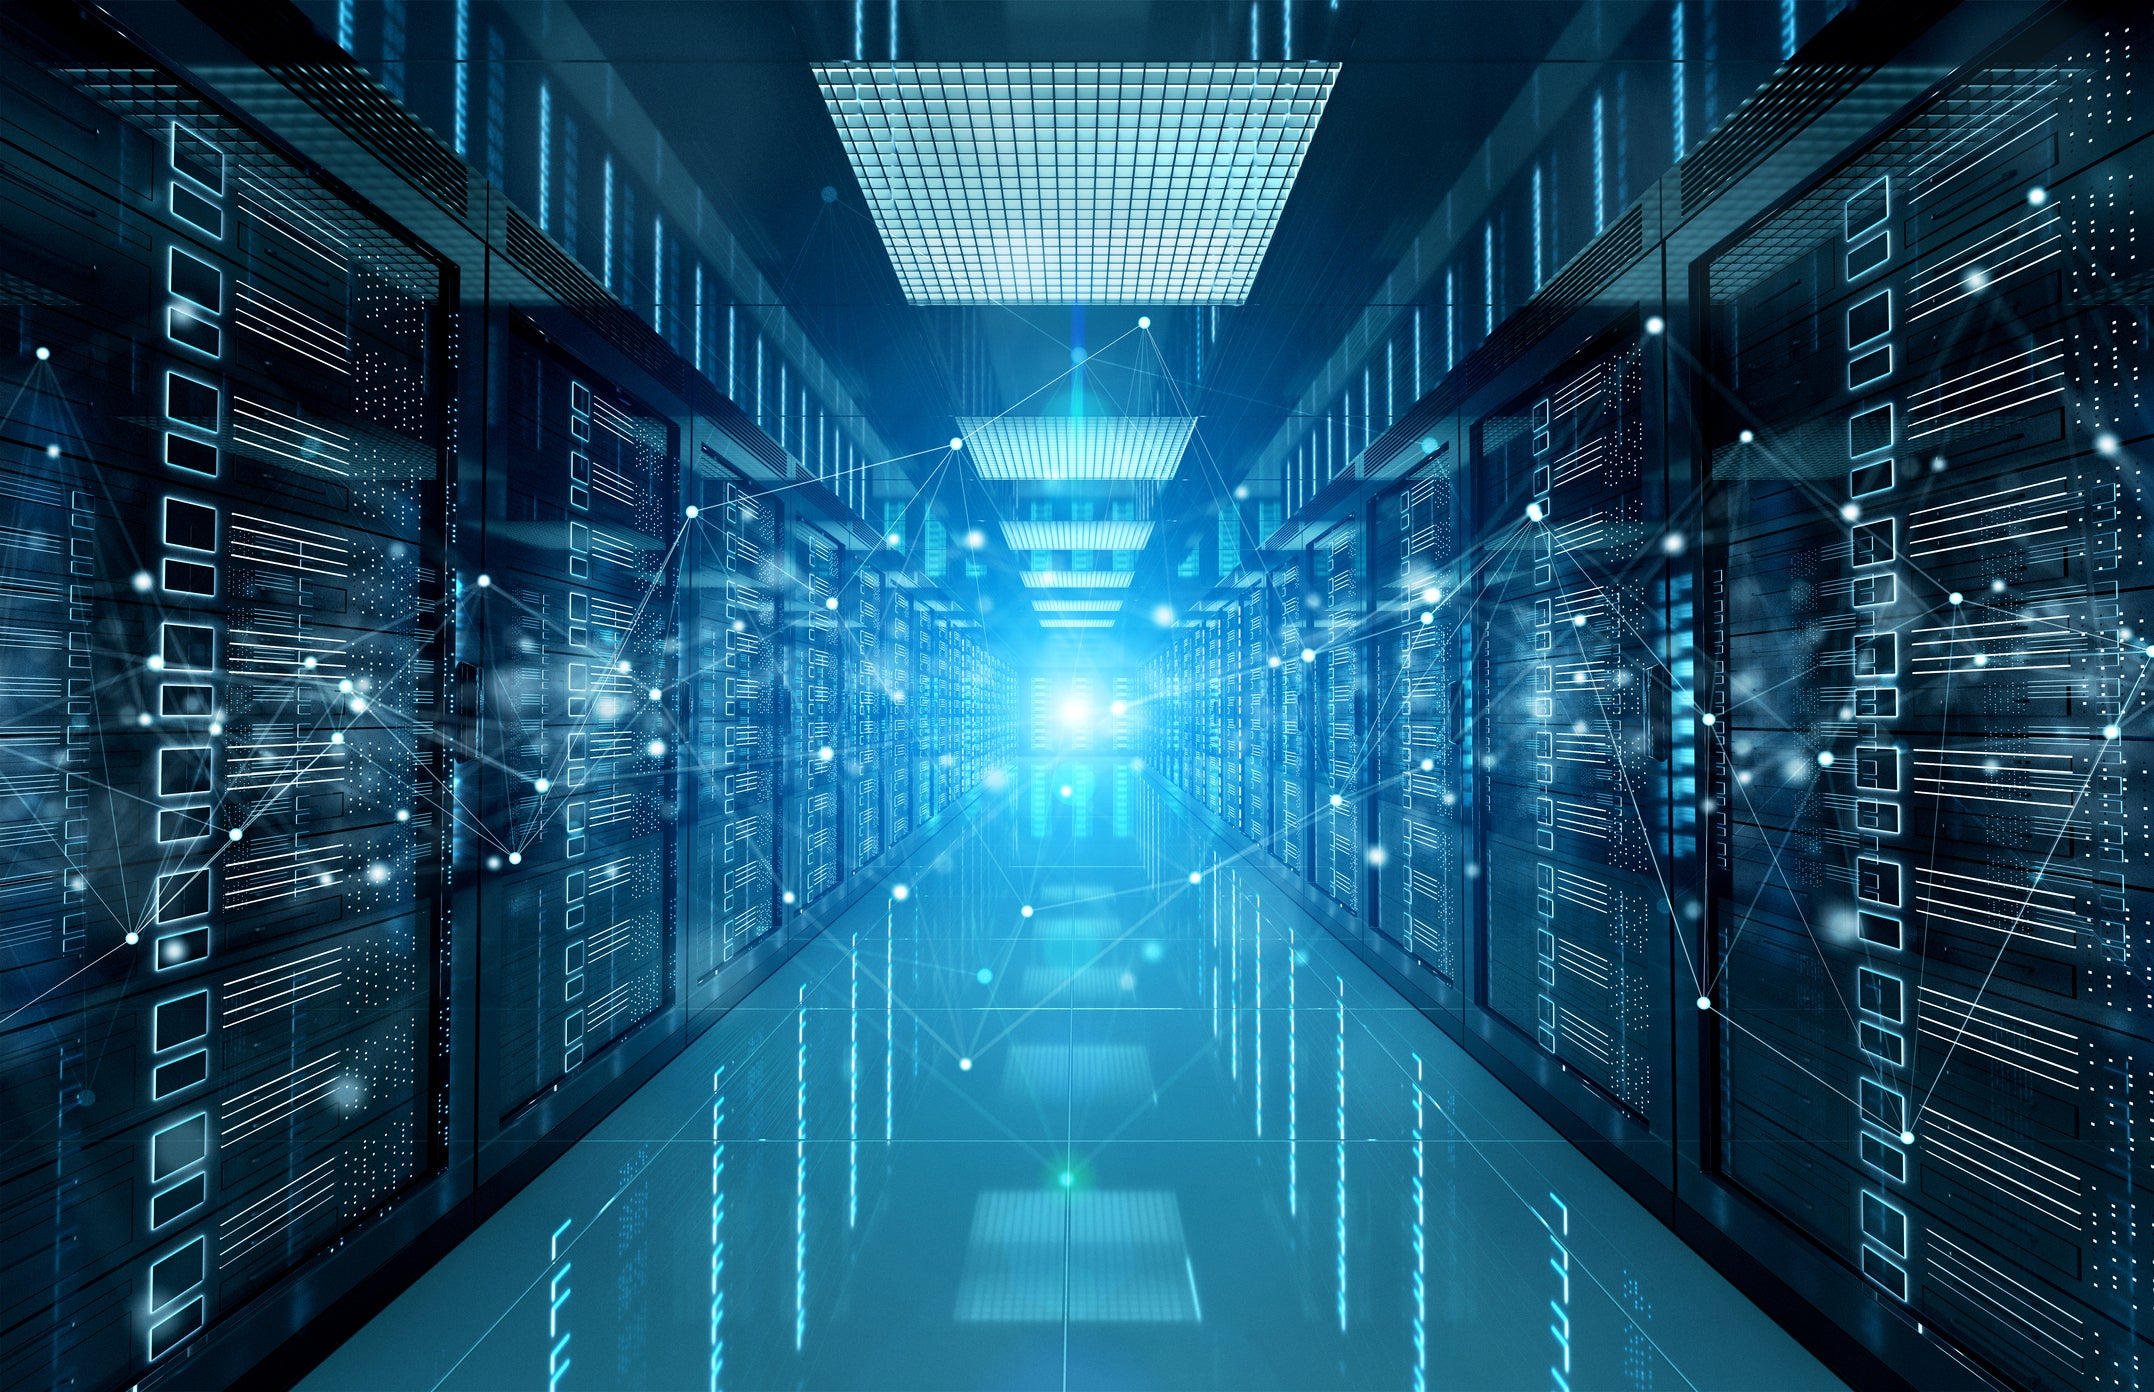 Could Arista Networks Become a Software Company?